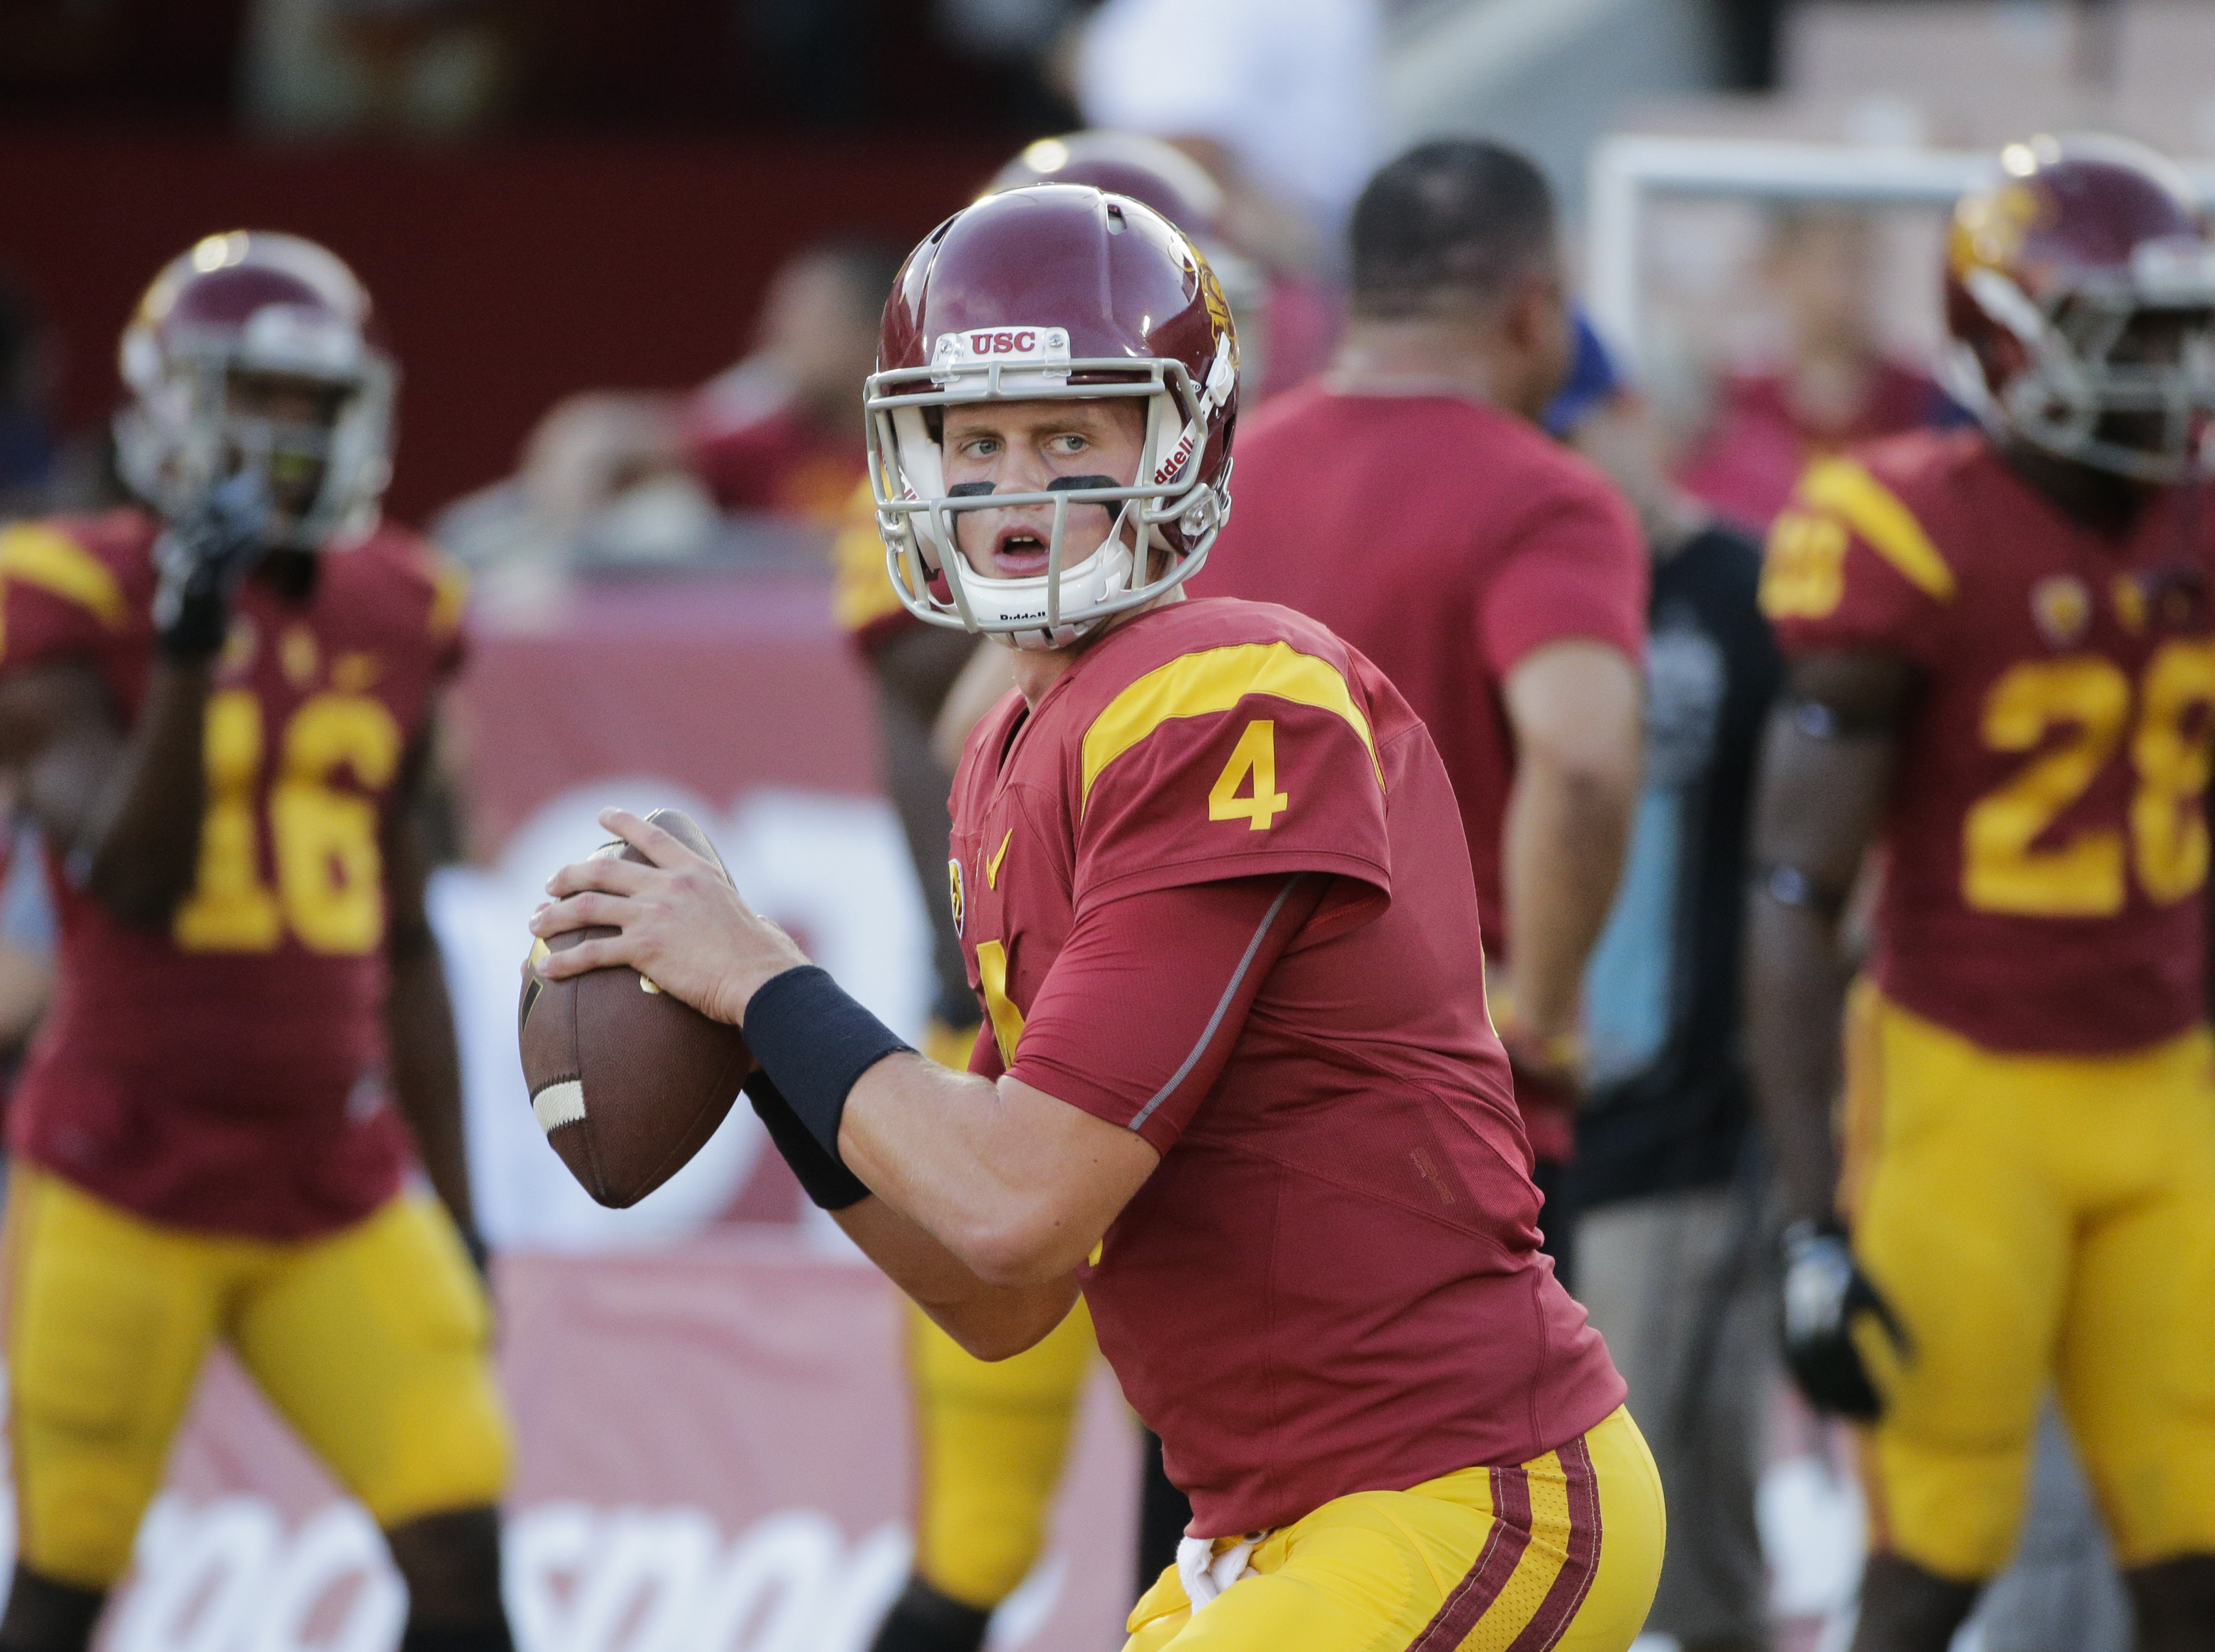 FILE - In this Oct. 8, 2015, file photo, Southern California quarterback Max Browne warms up before an NCAA college football game against Washington, in Los Angeles. Browne waited through three years and three head coaches to be the starting quarterback a